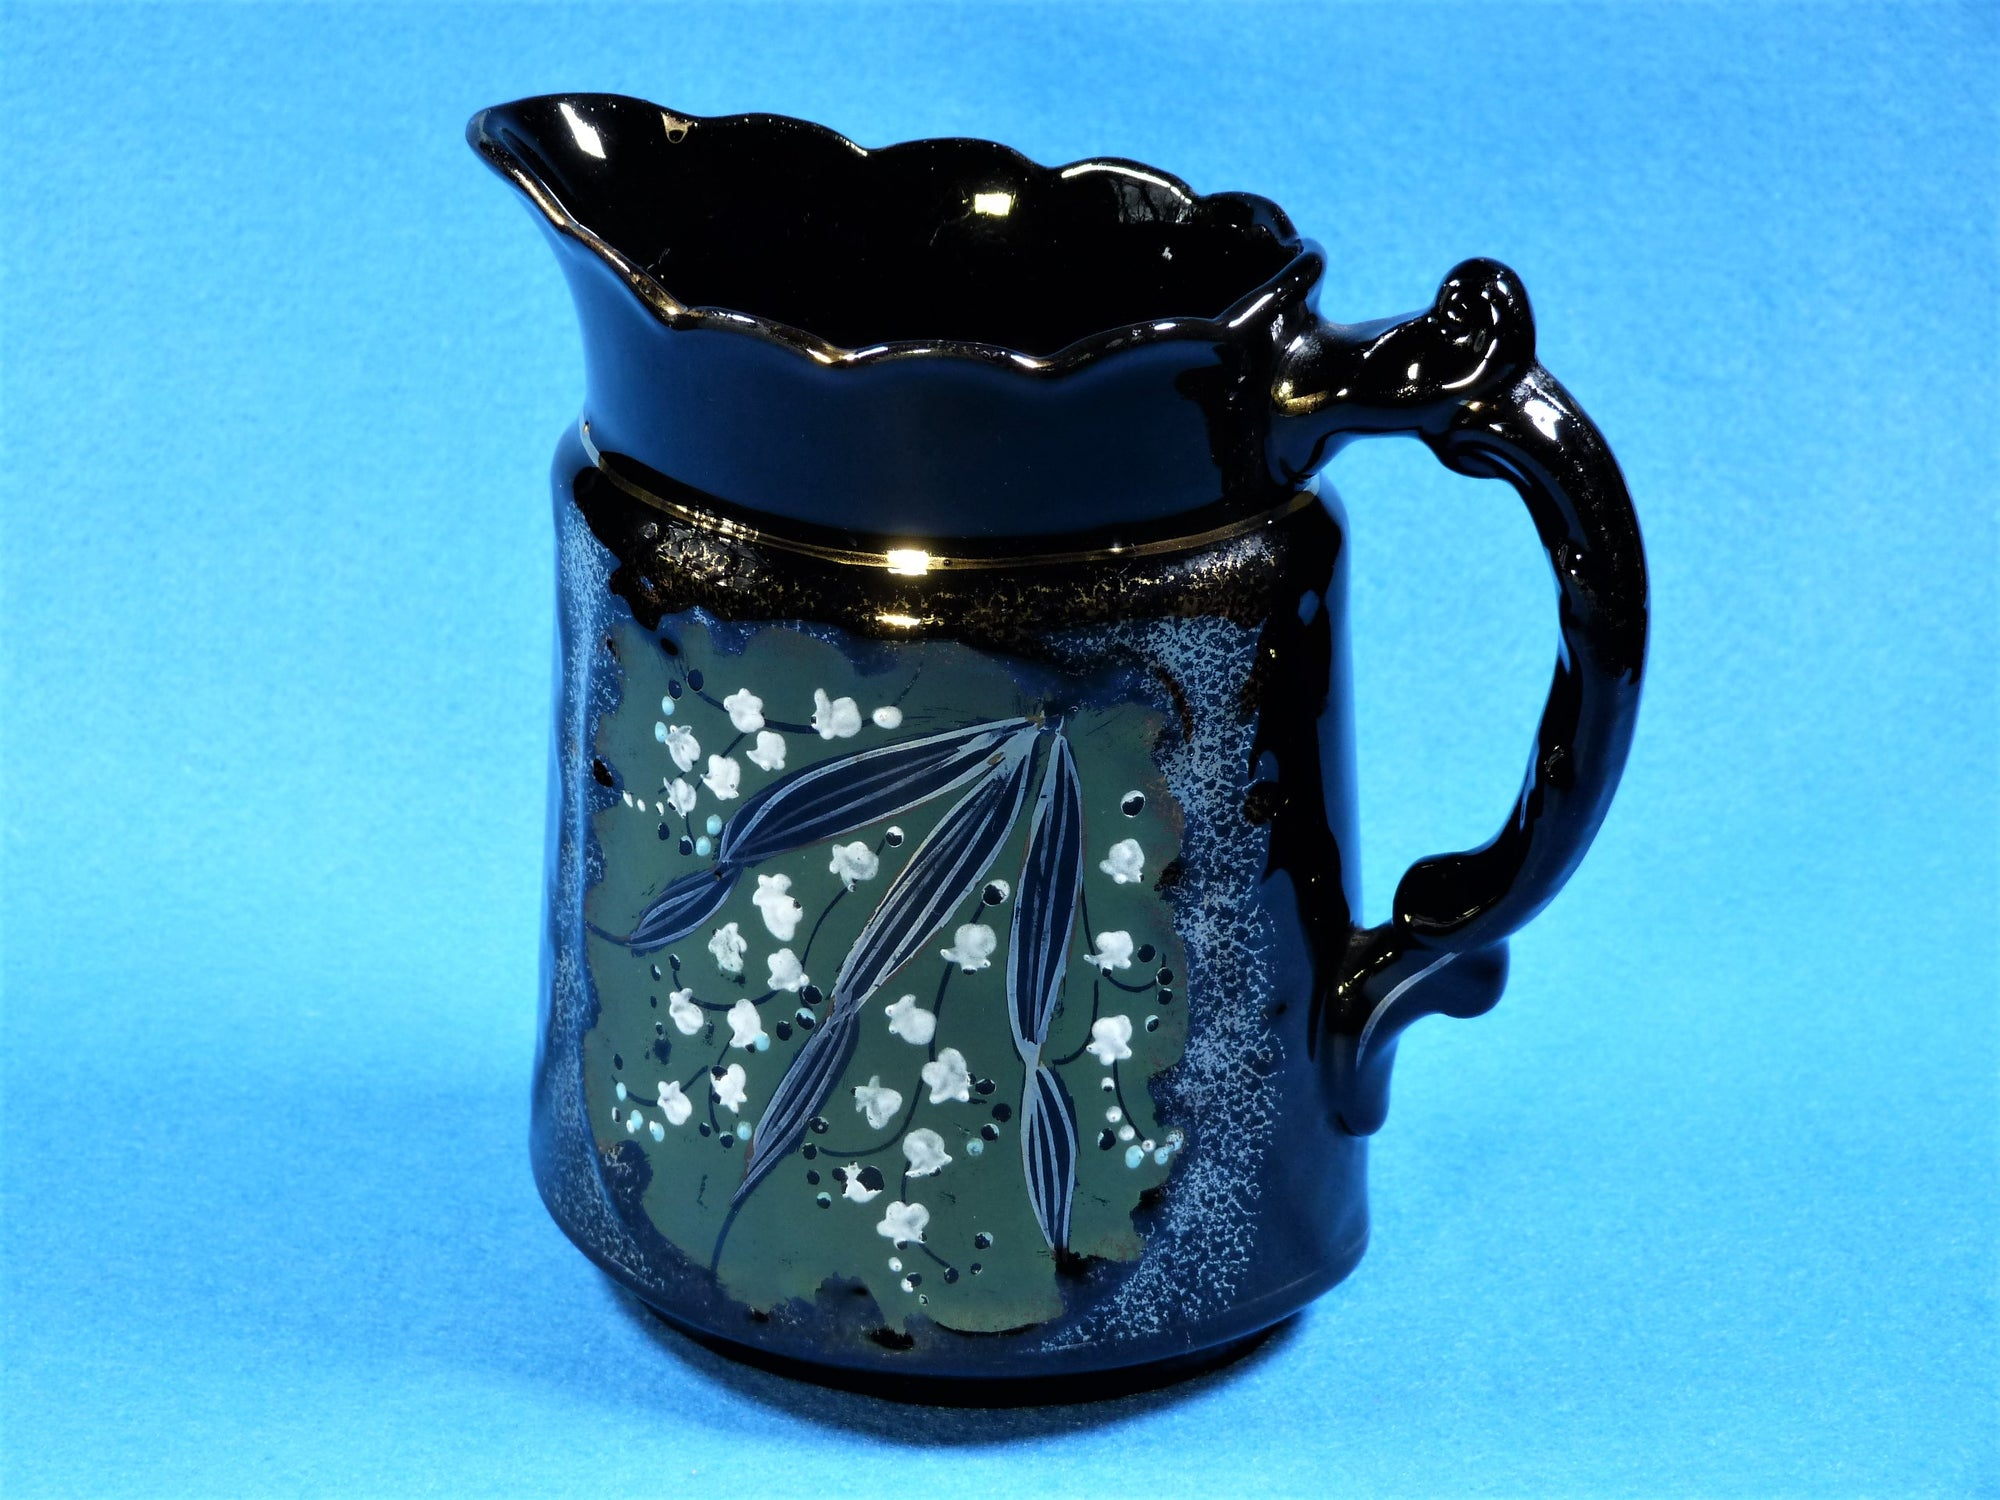 Victorian Jackfield Jug, Black Glaze Pottery, Antique Black Jug, 1800's